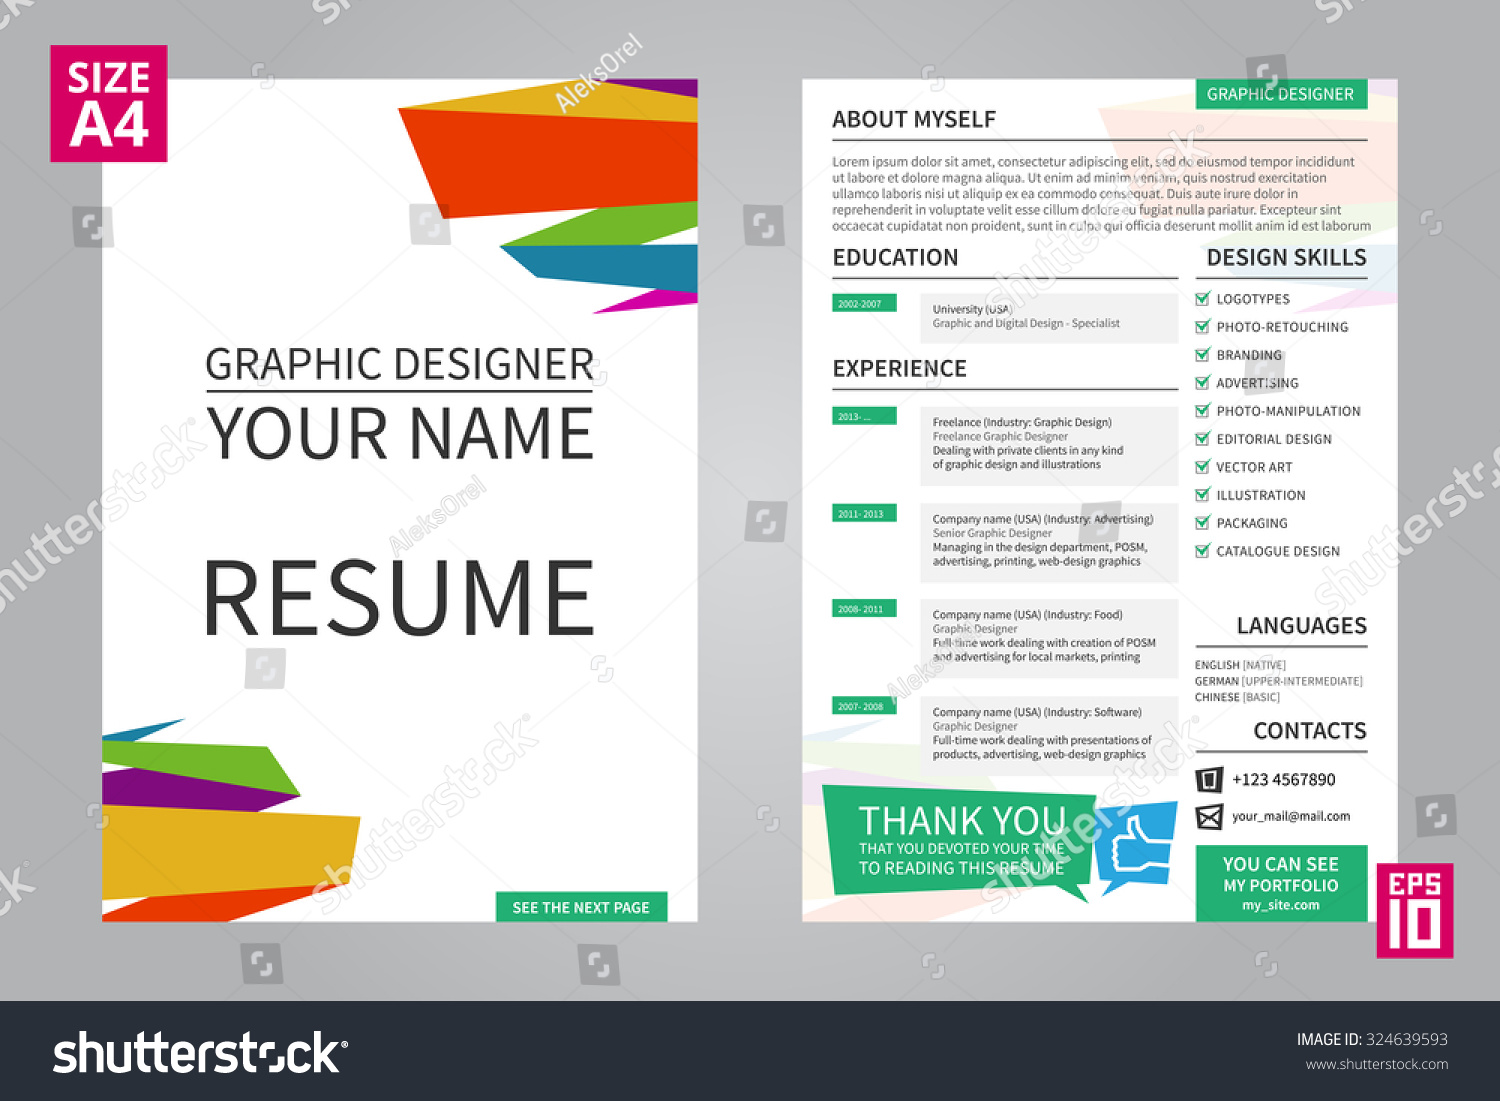 vector minimalist cv resume template for graphic designer with title front page cv - Resume Templates For Graphic Designers